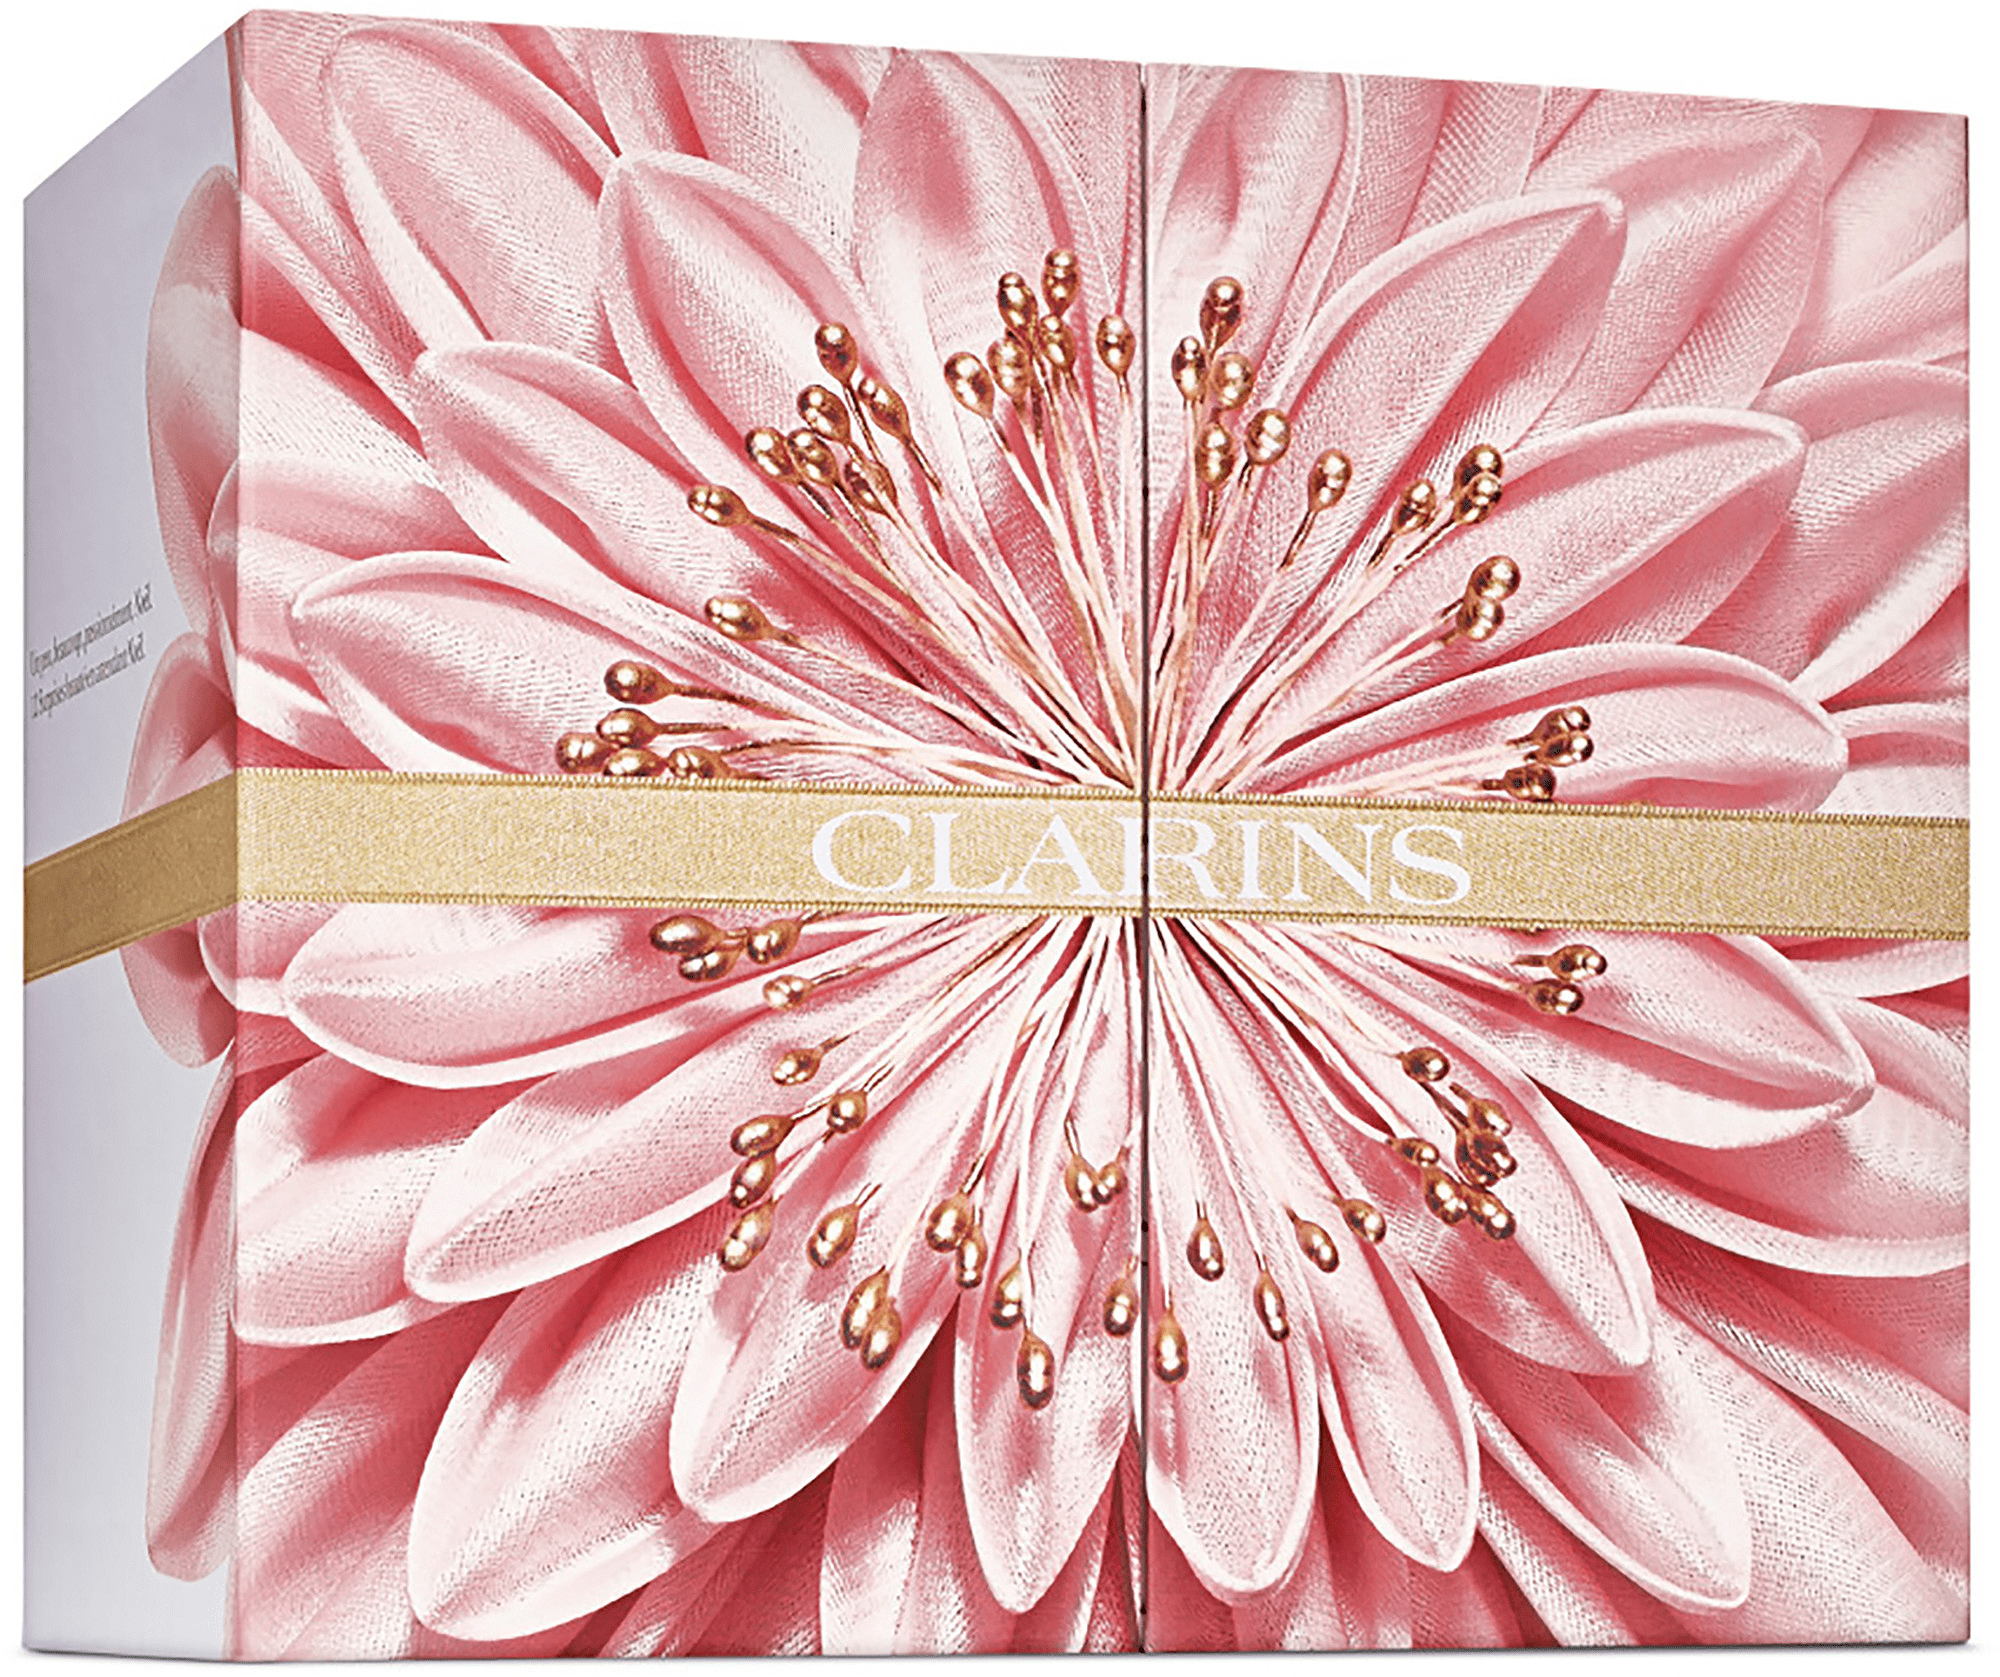 2018 Clarins Festive Surprises Advent Calendar Available Now + Full Spoilers!